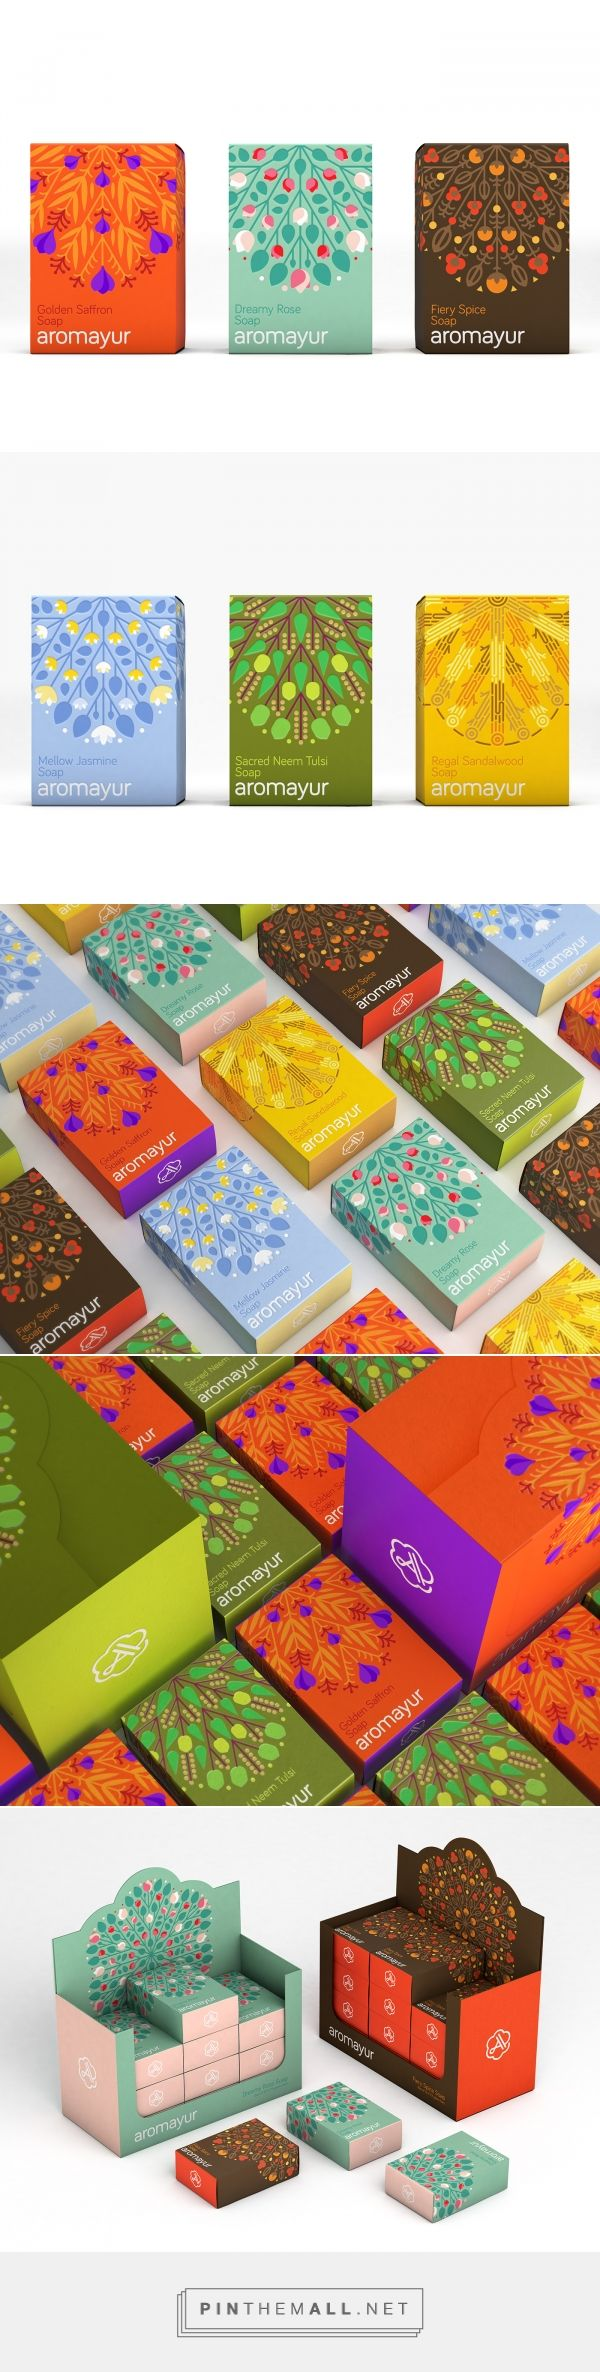 Aromayur / natural products / soap design by Zooscope